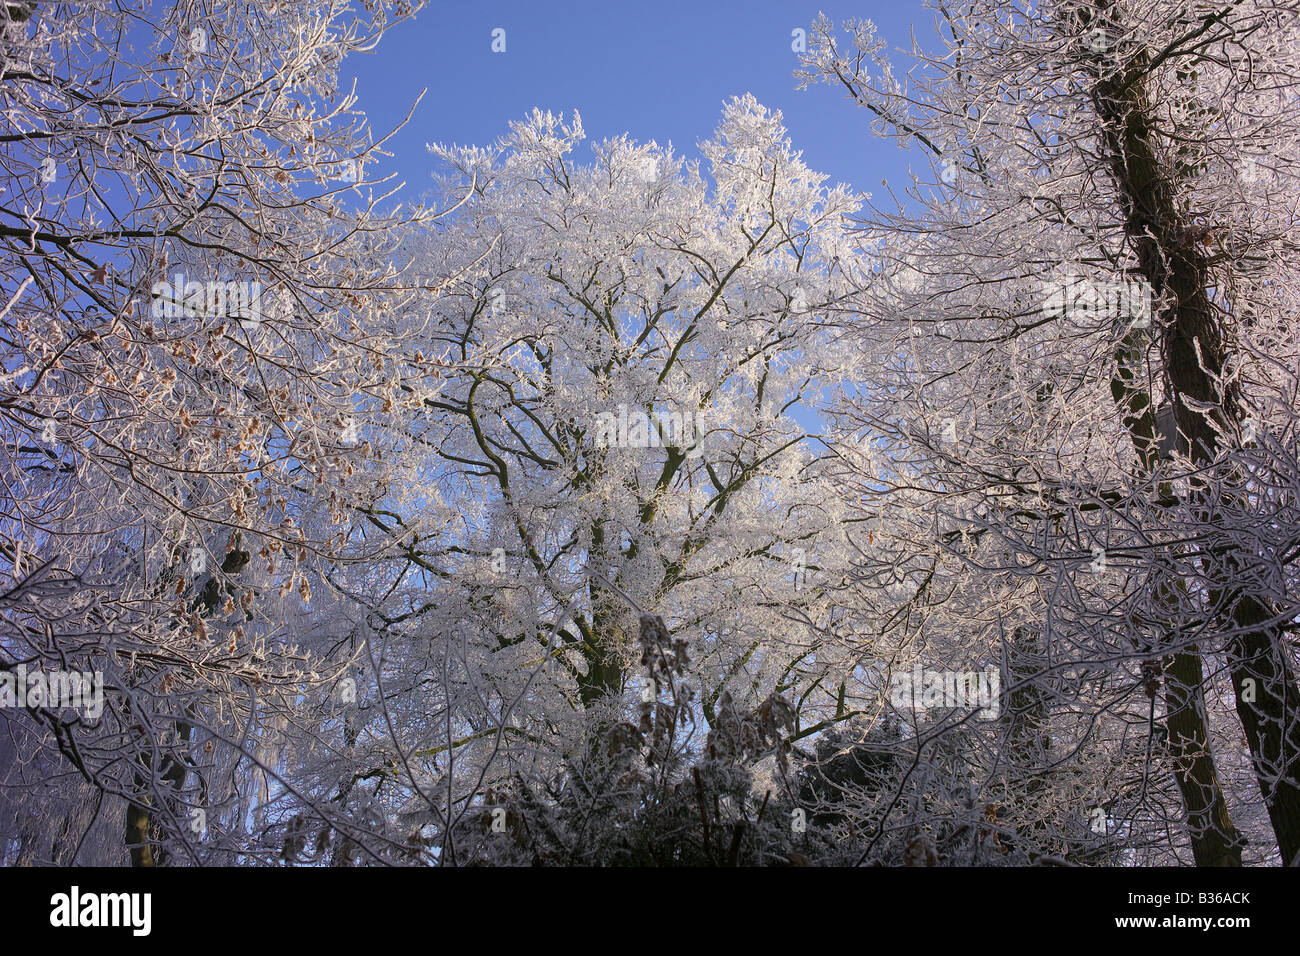 Ice on trees following frost after damp weather - Stock Image